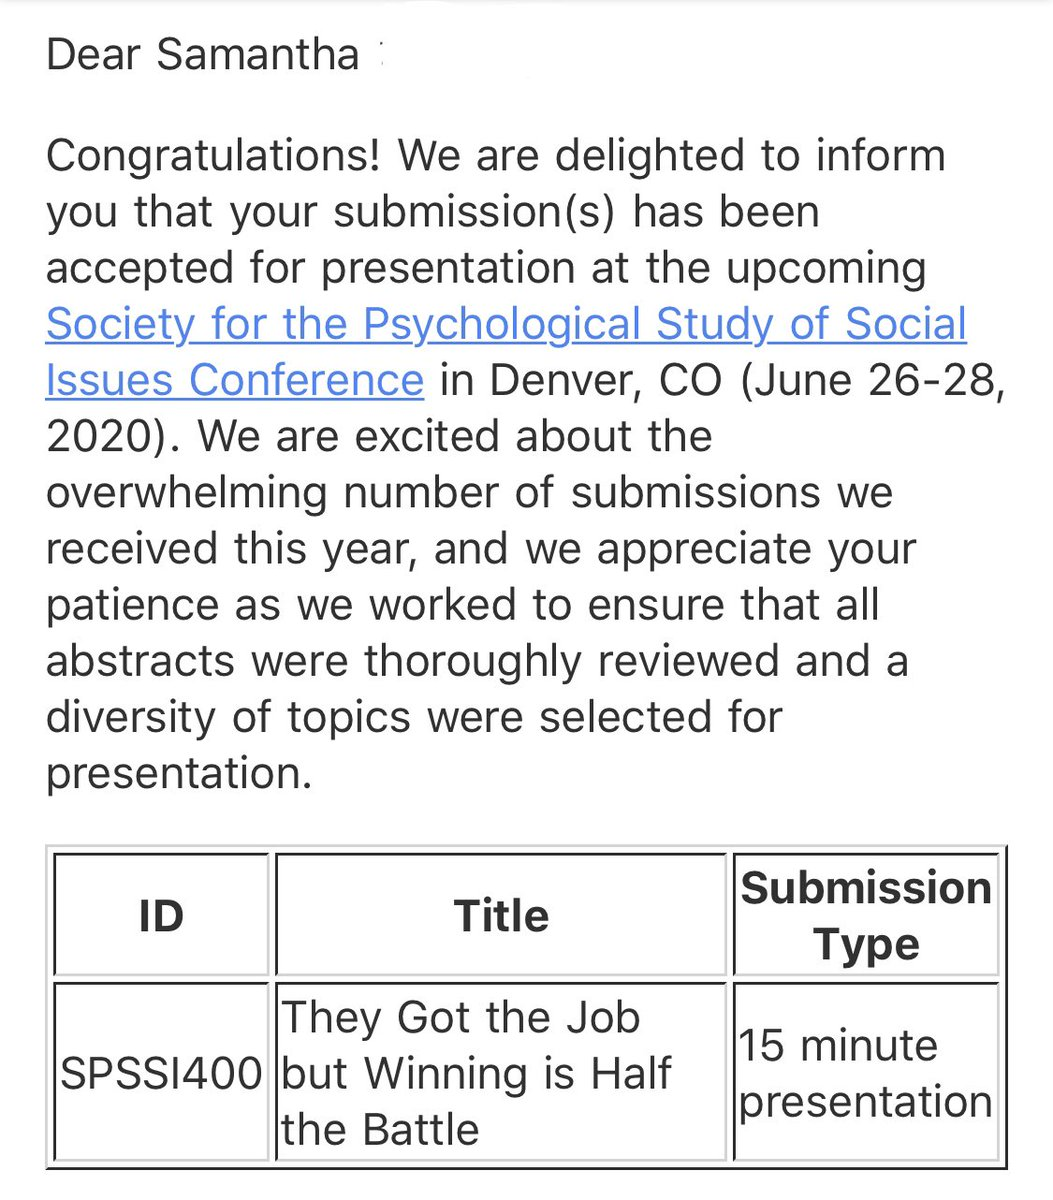 Looking fwd to attending @SPSSI! It will be my 1st time. Many thx to whoever reviewed my proposal submission & thought it could add value to #SPSSICon2020!  Also, the last time I was in Denver, the snow was above my knees, so I'm glad this conference is in June.   #phdjourney <br>http://pic.twitter.com/E55UloJL9a